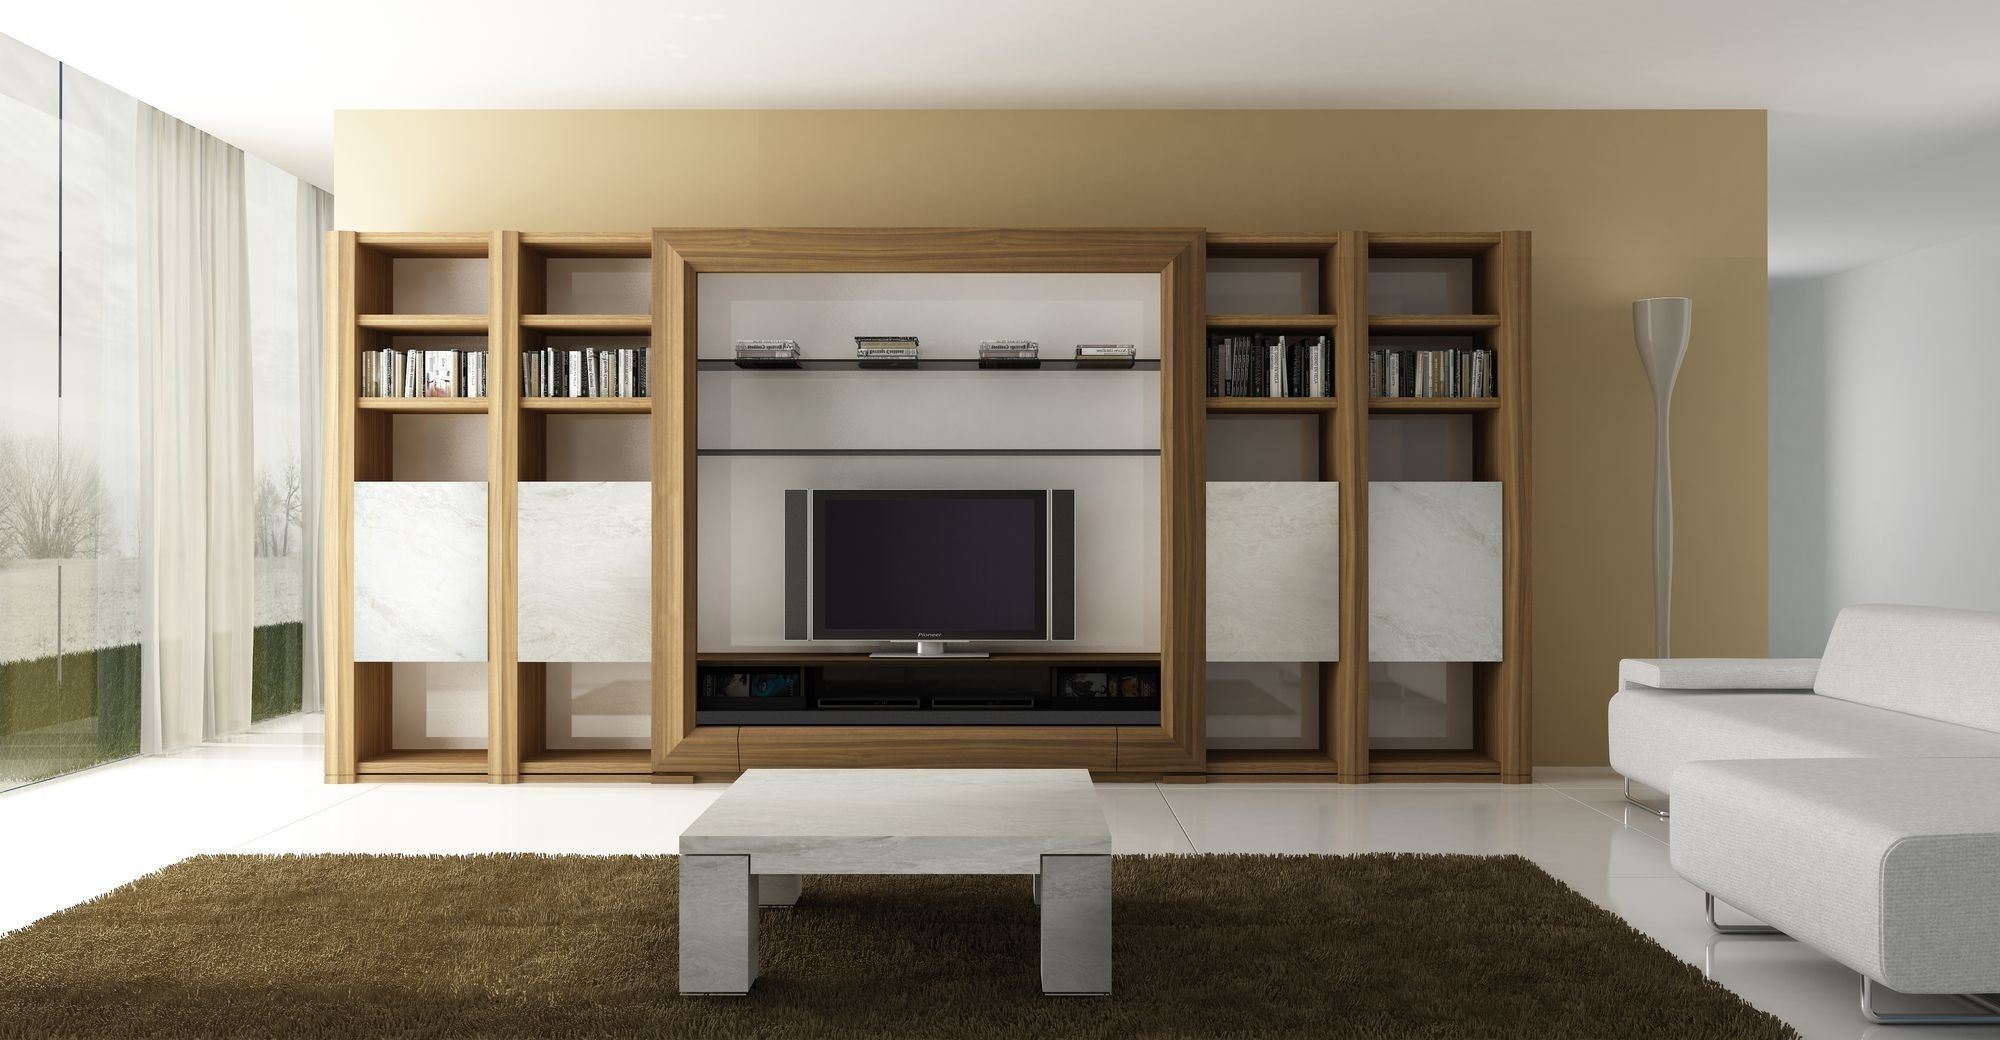 1000 Images About Tv Wall Unit On Pinterest Modern Wall Units Within Tv Storage Units (View 10 of 15)